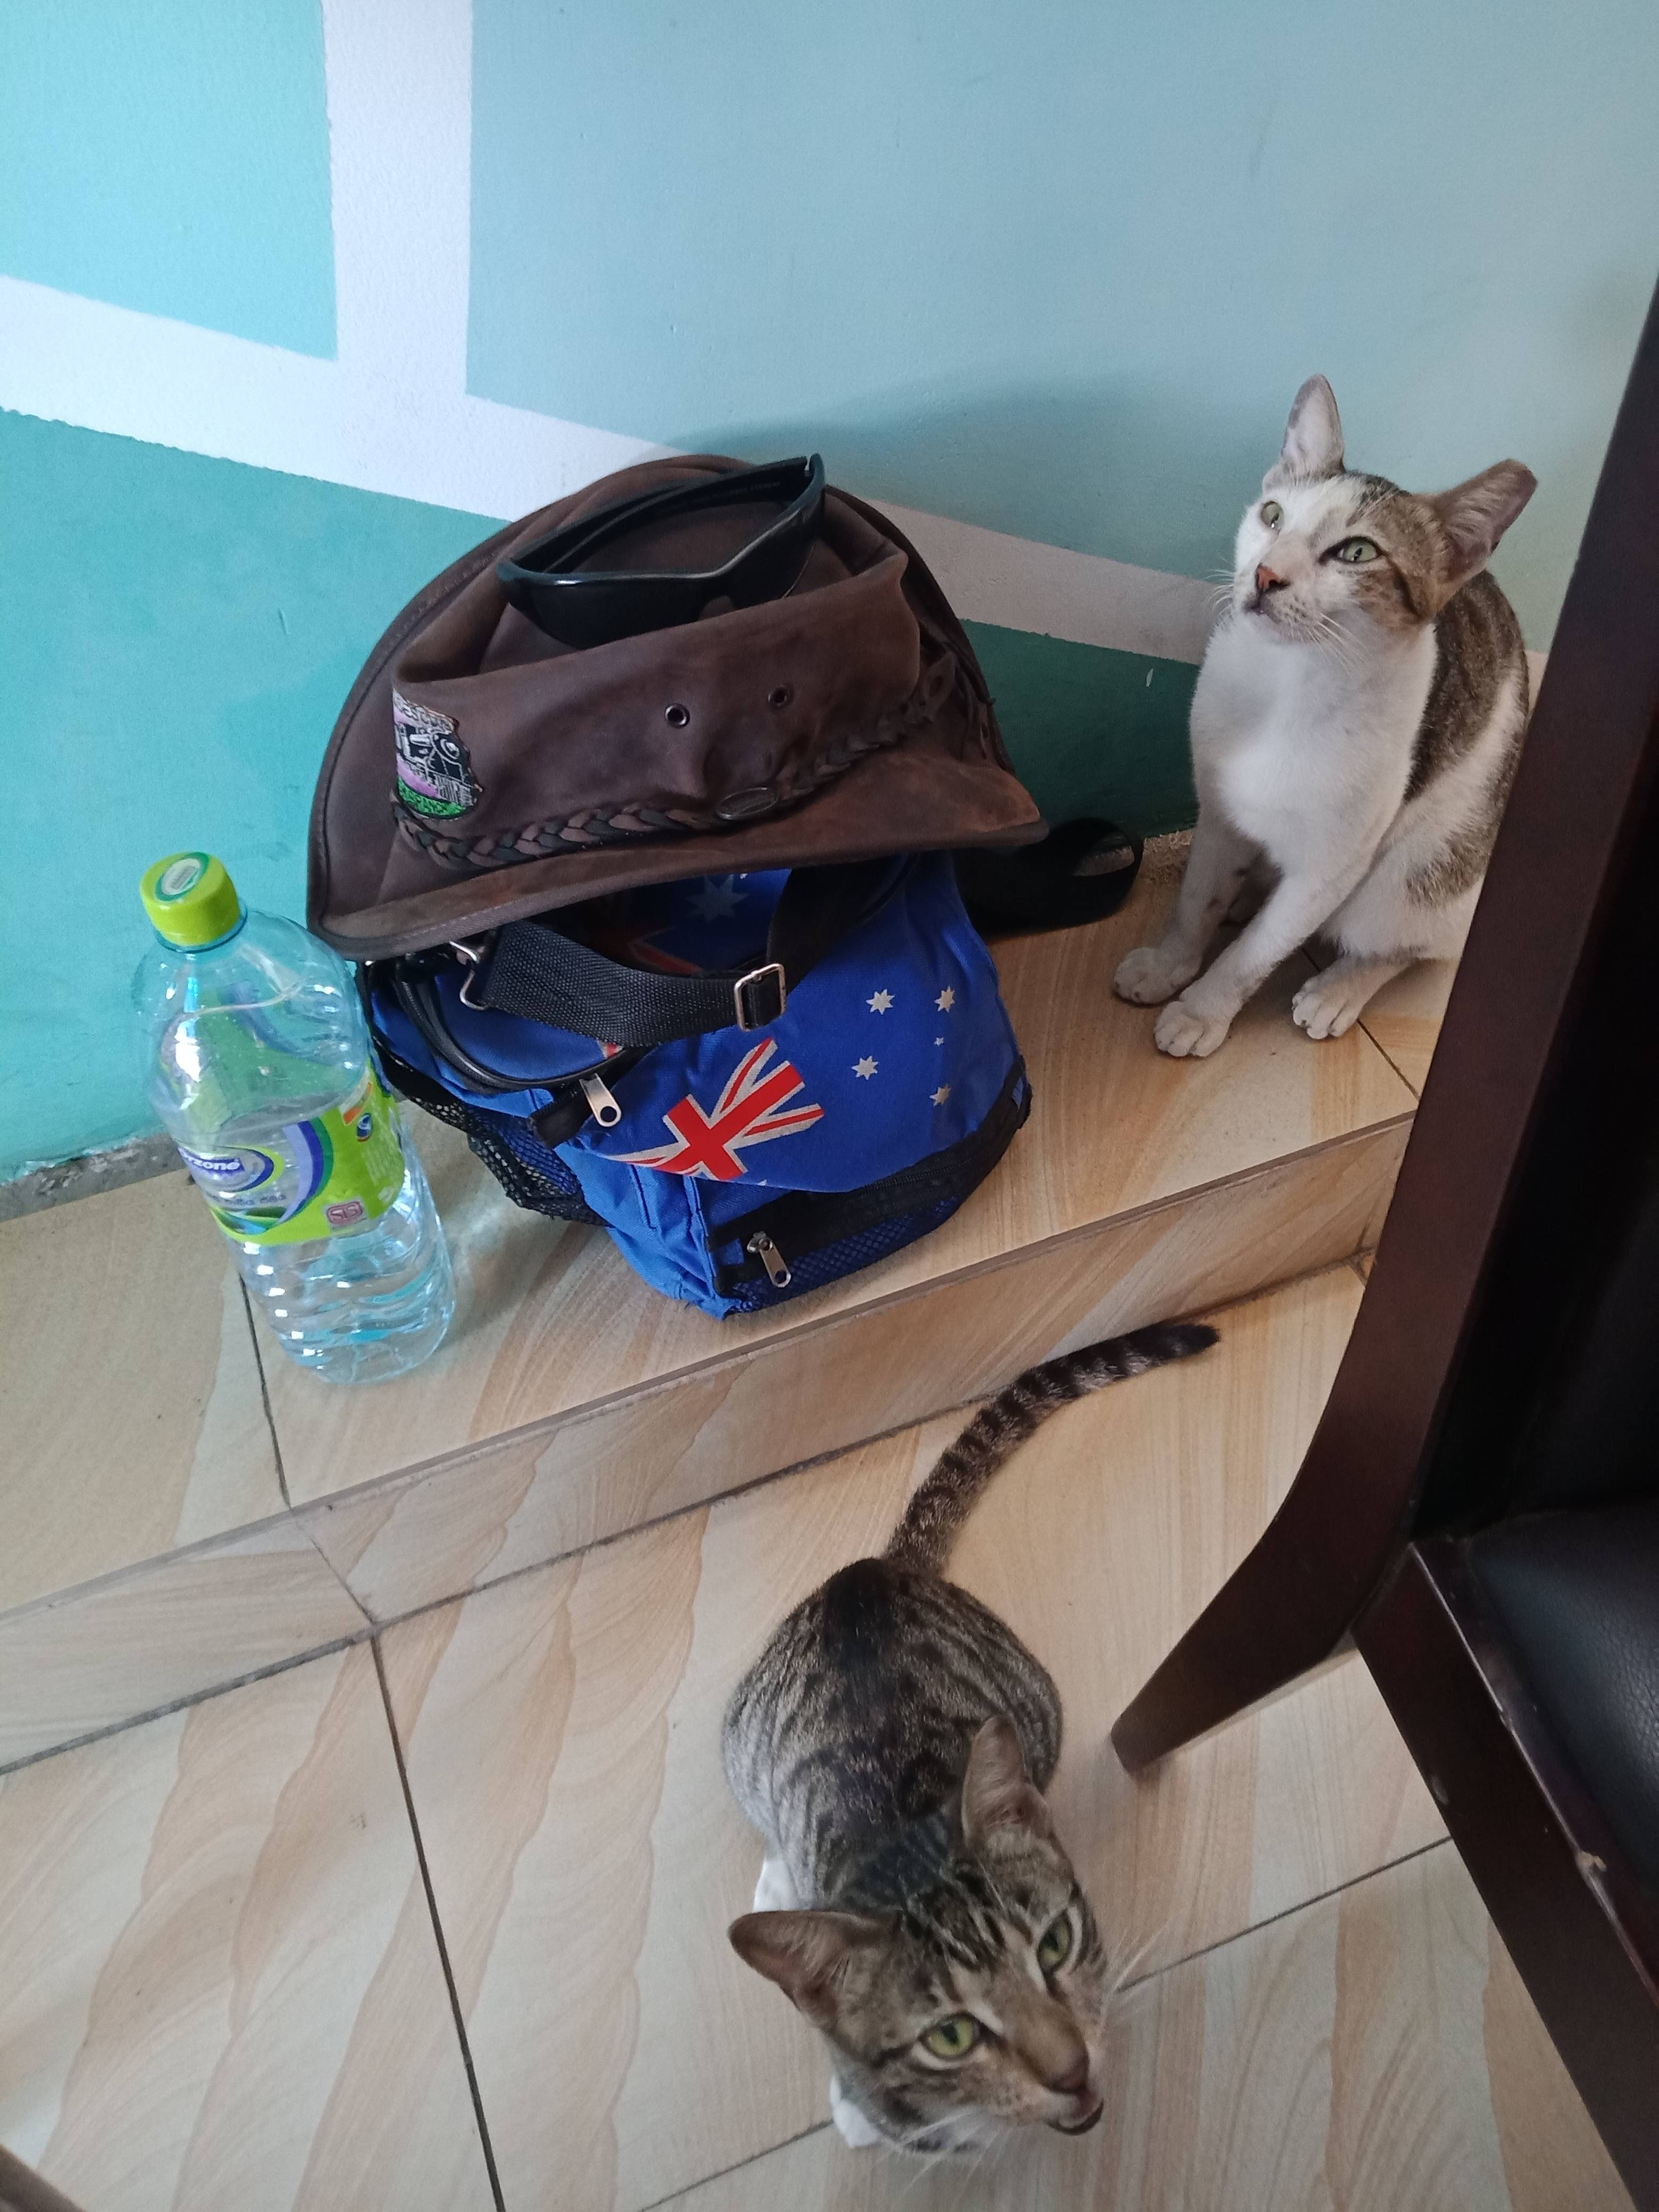 Cats begging for food